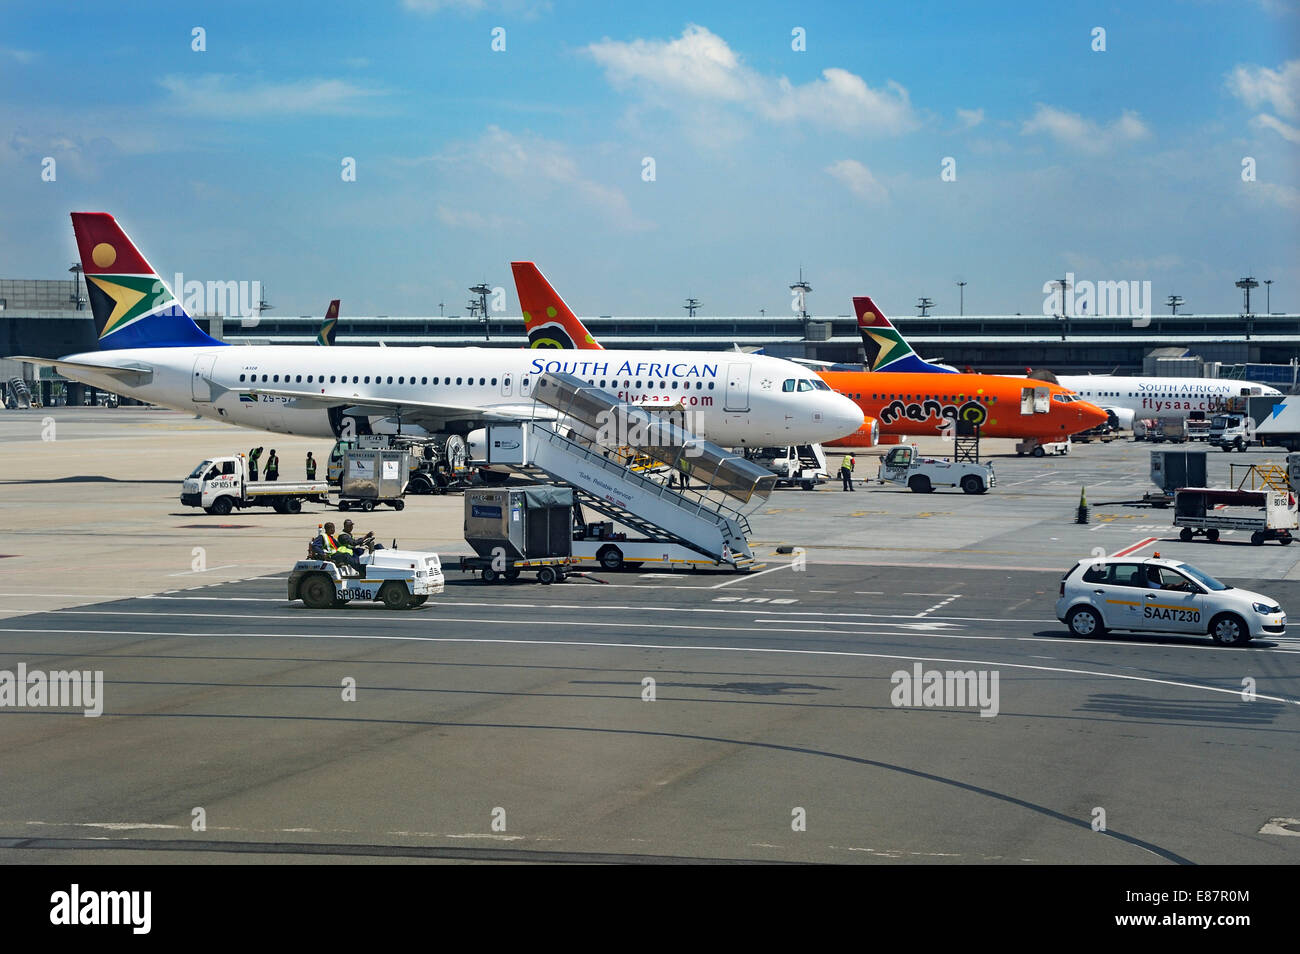 Aircraft of SAA, South African Airways at OR Tambo International Airport, Johannesburg, South Africa - Stock Image